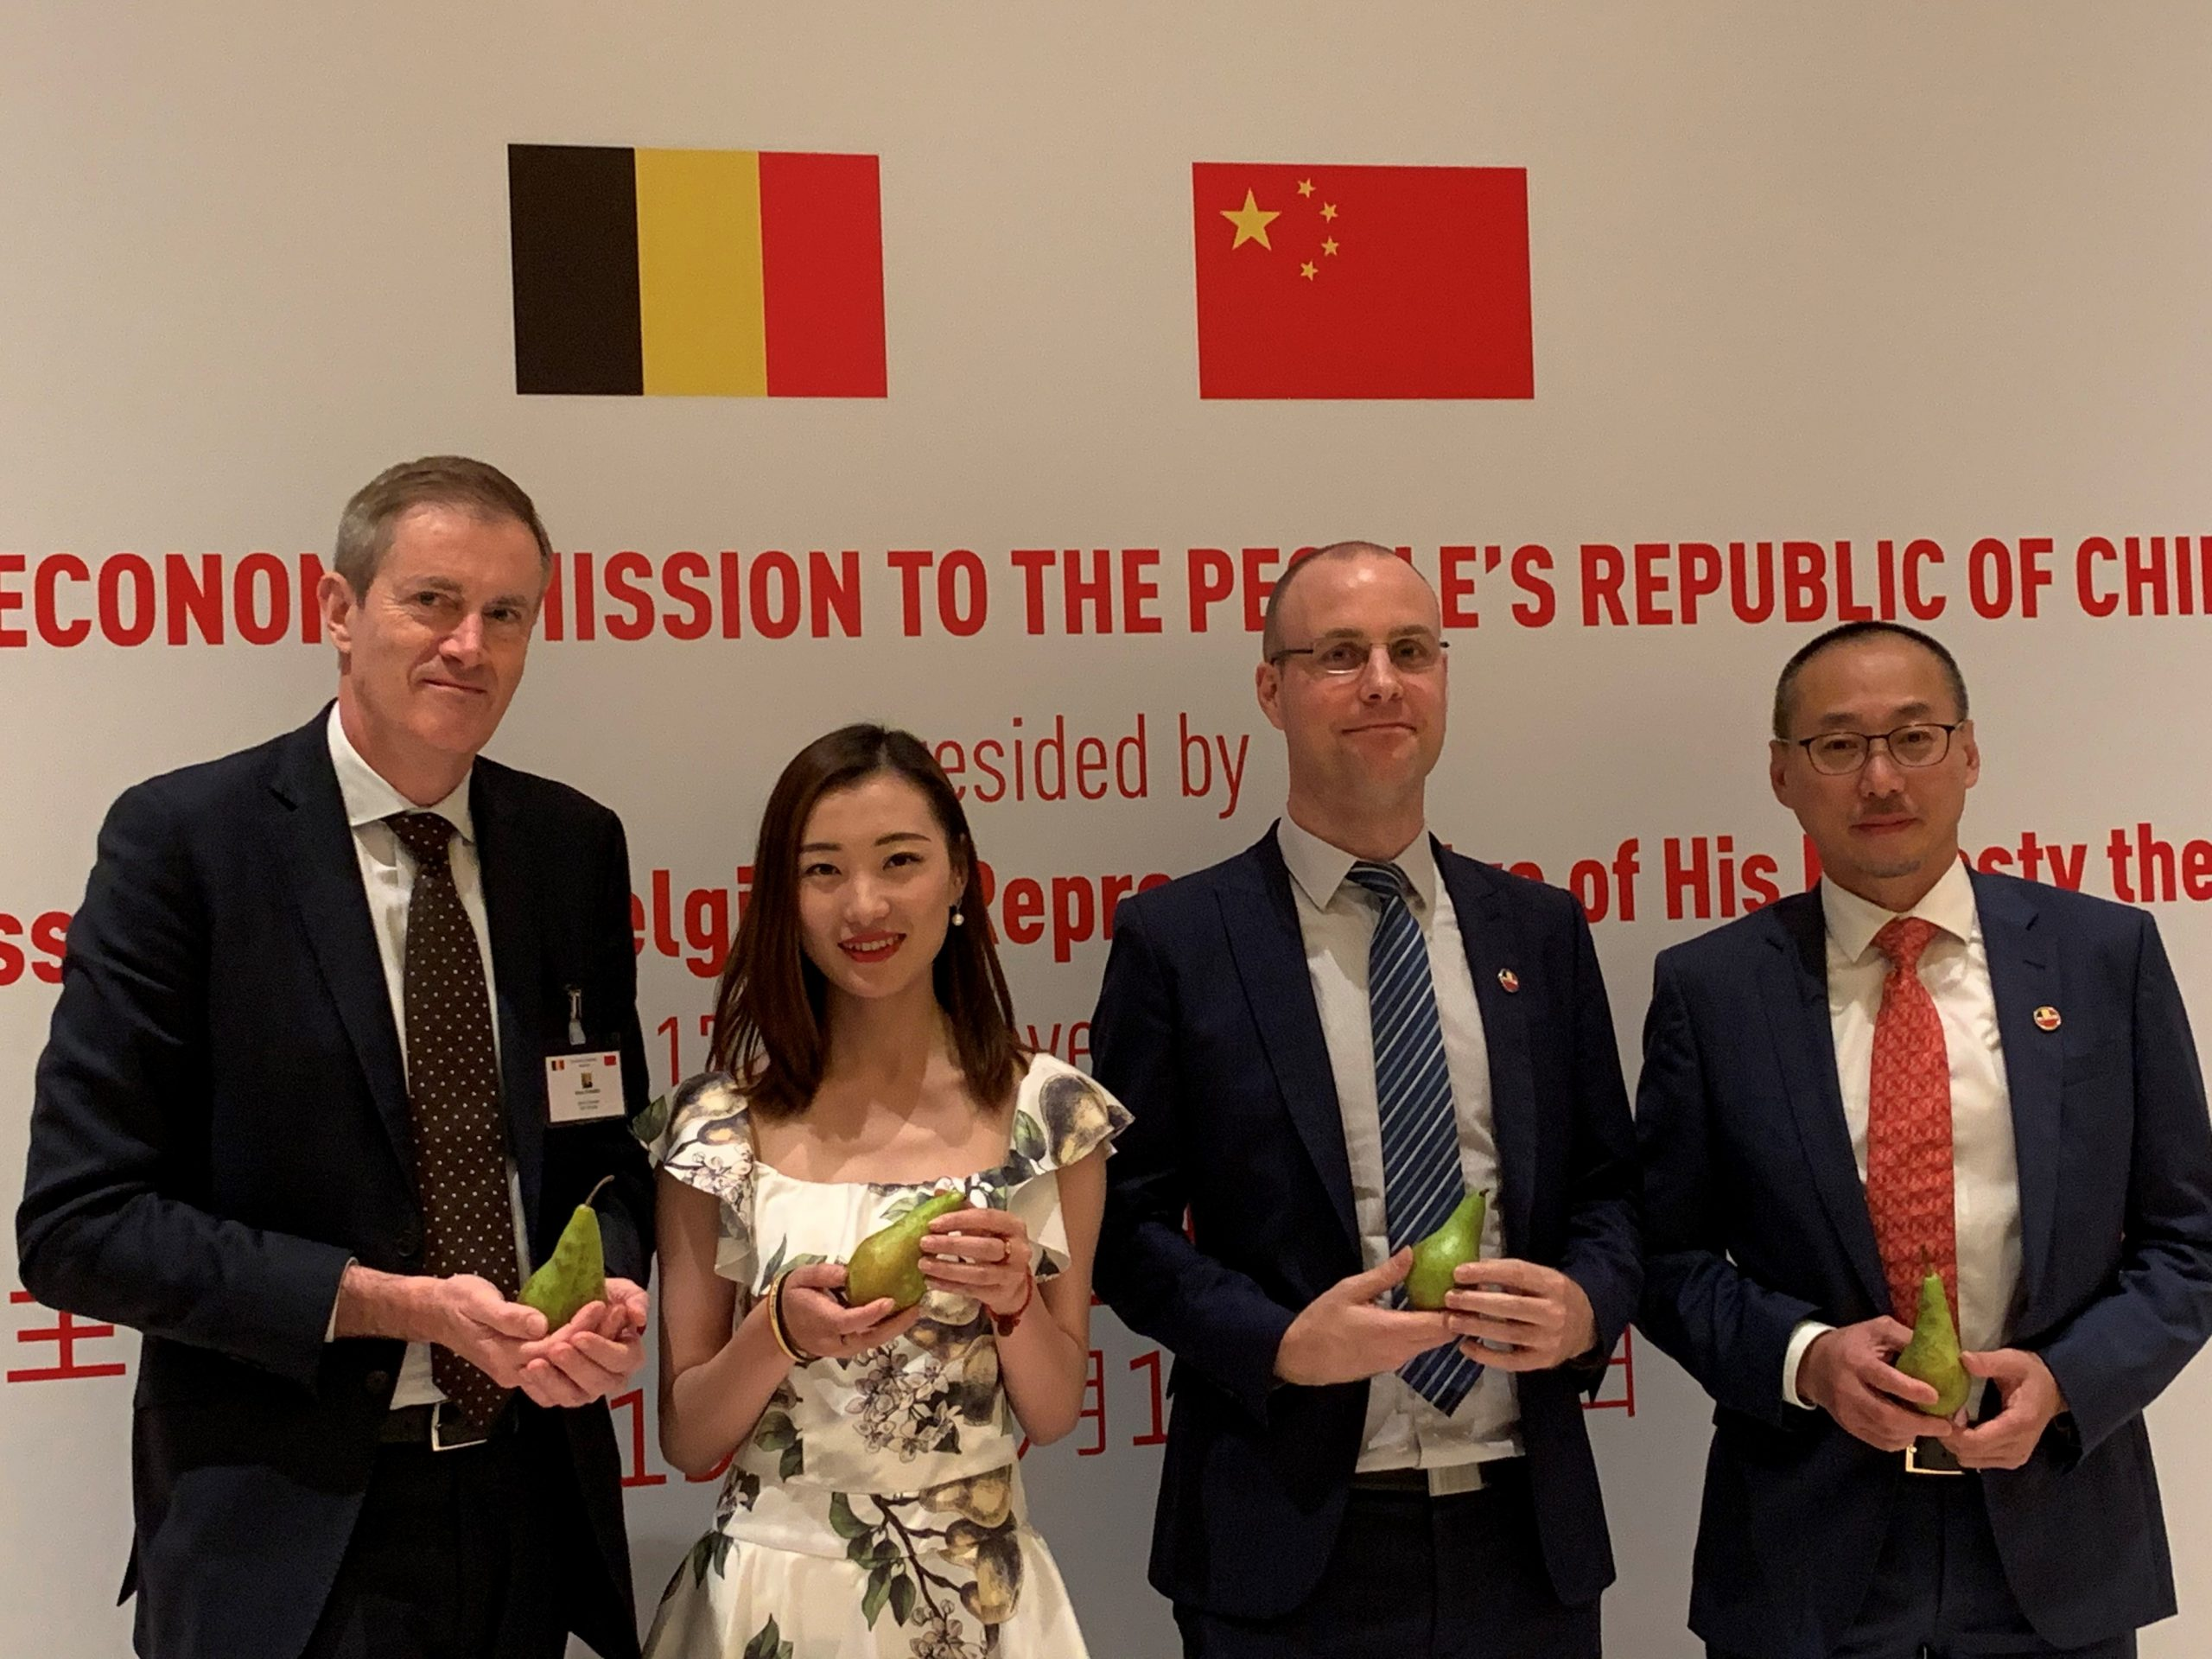 BFV – Dole China on the 10 year anniversary of Truval Conference Pears in China